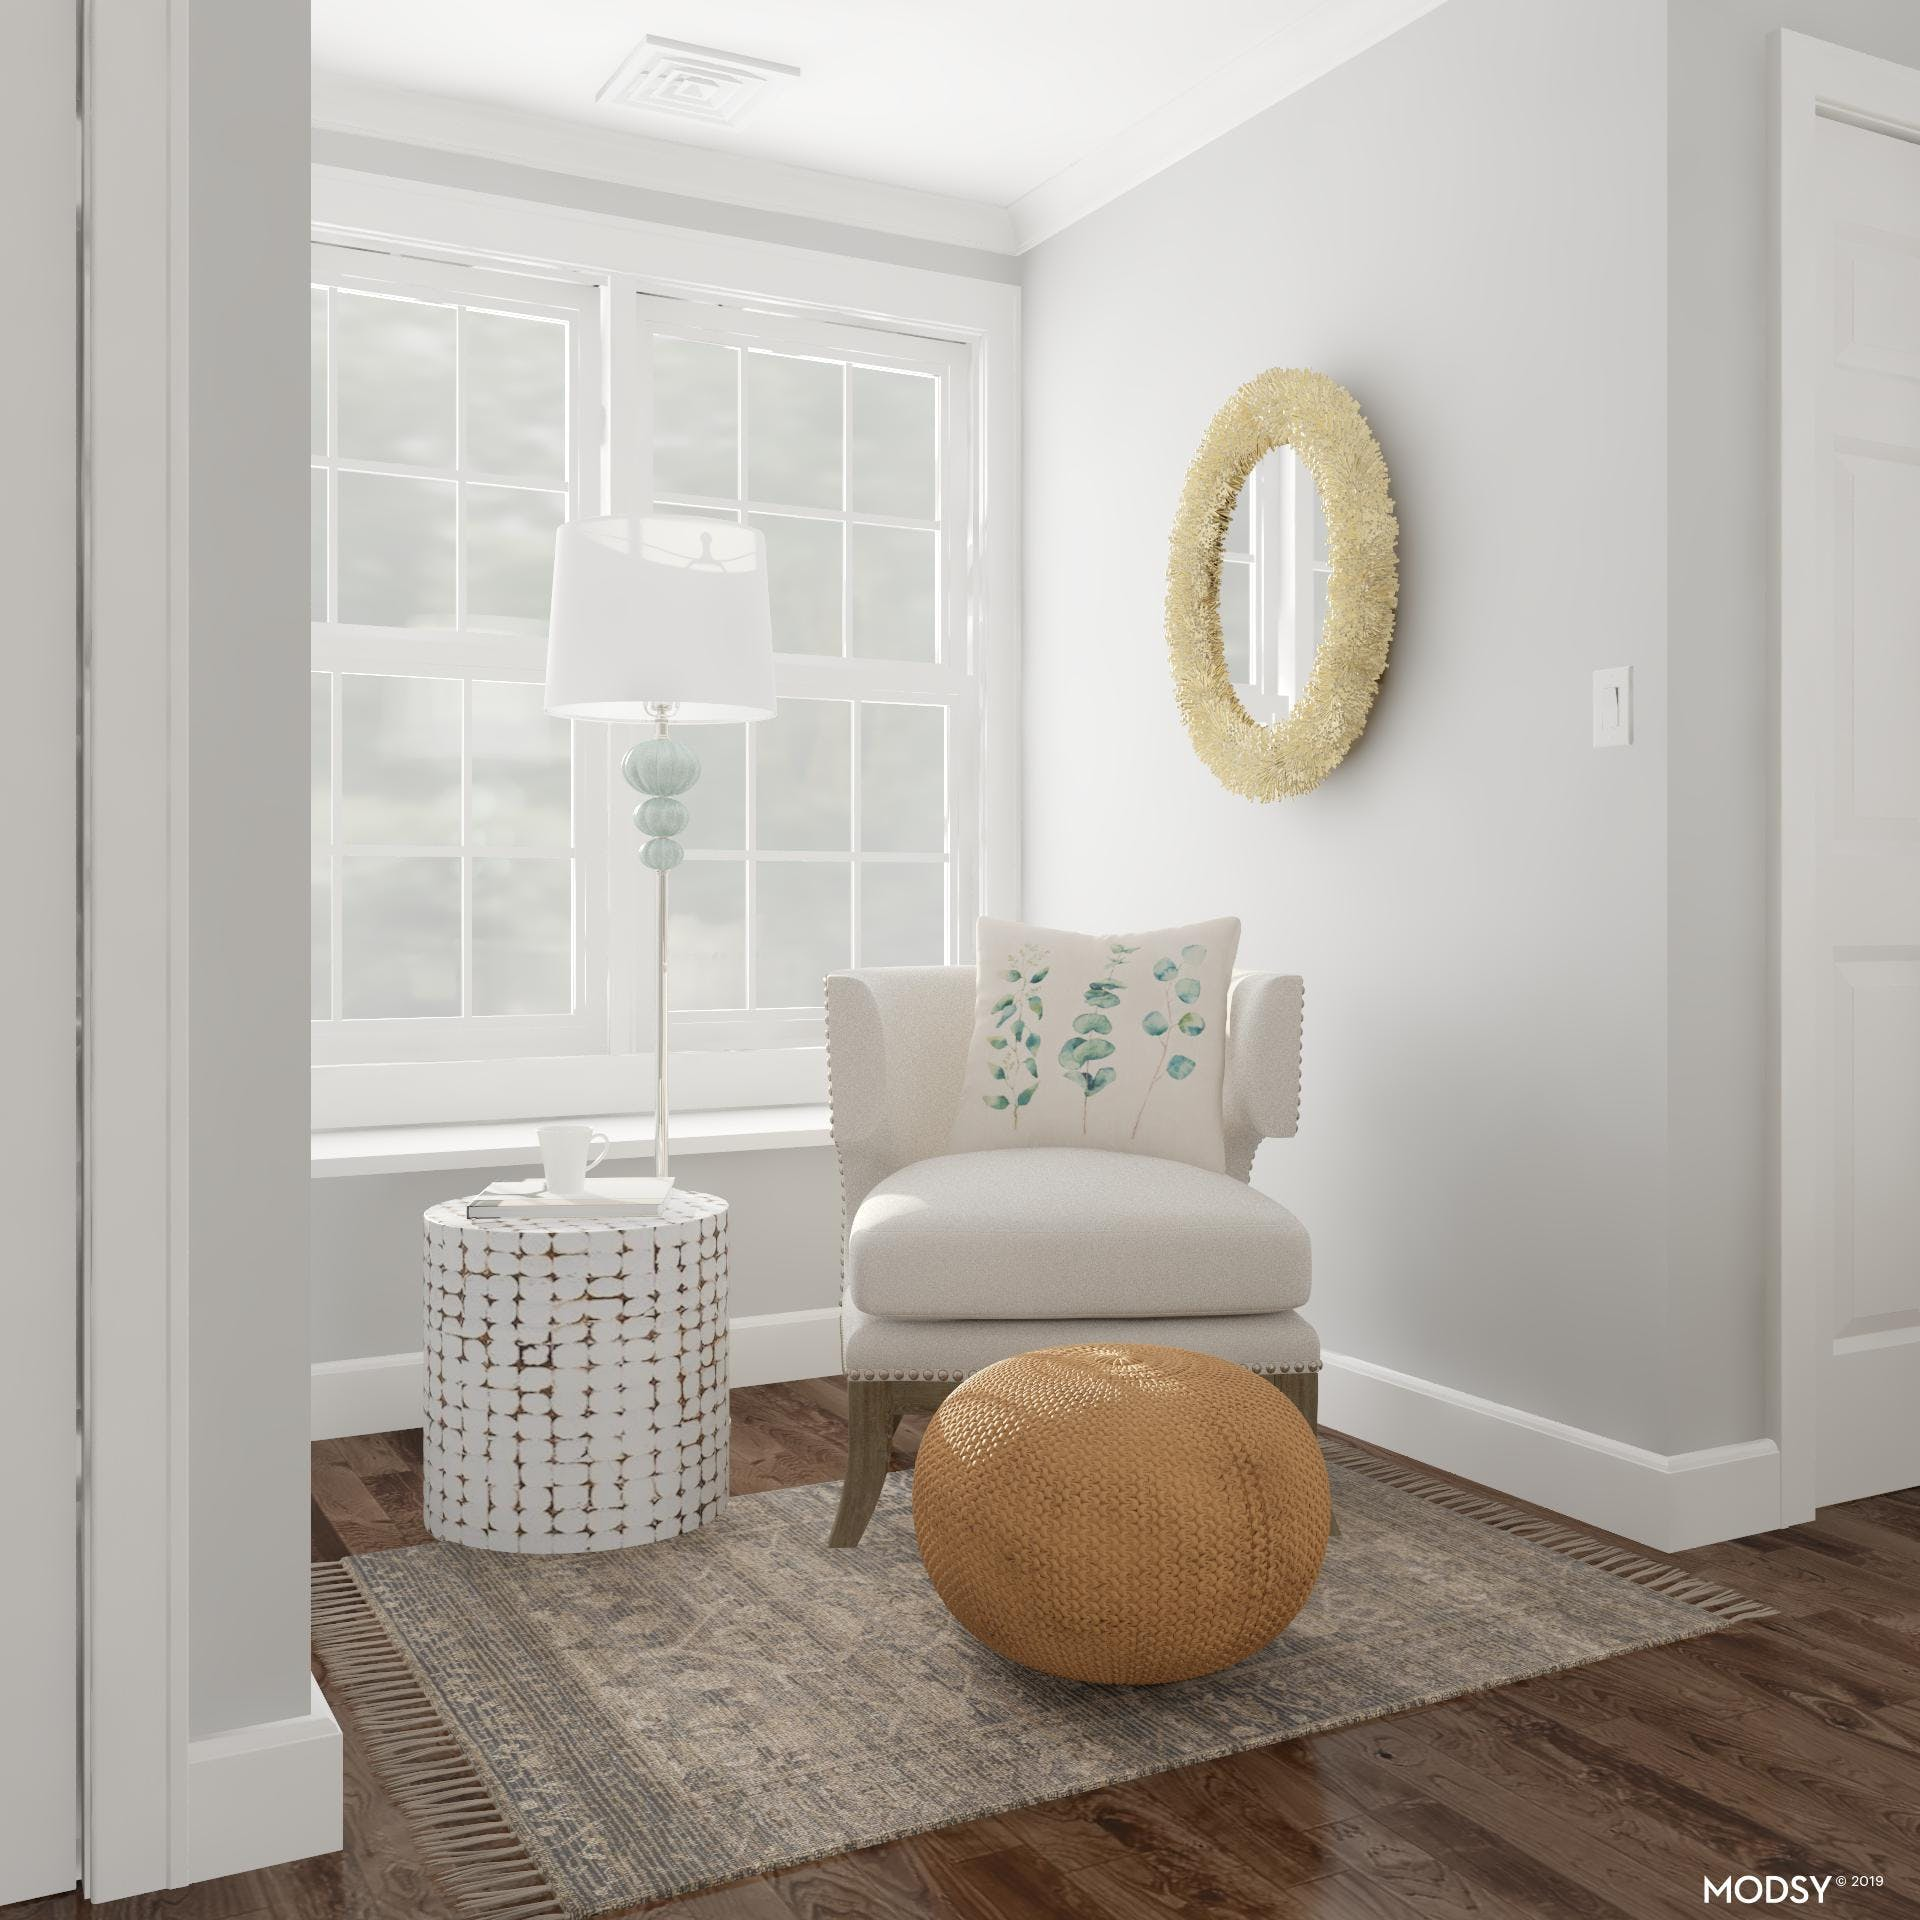 A Cozy Nook With Beachy Accents